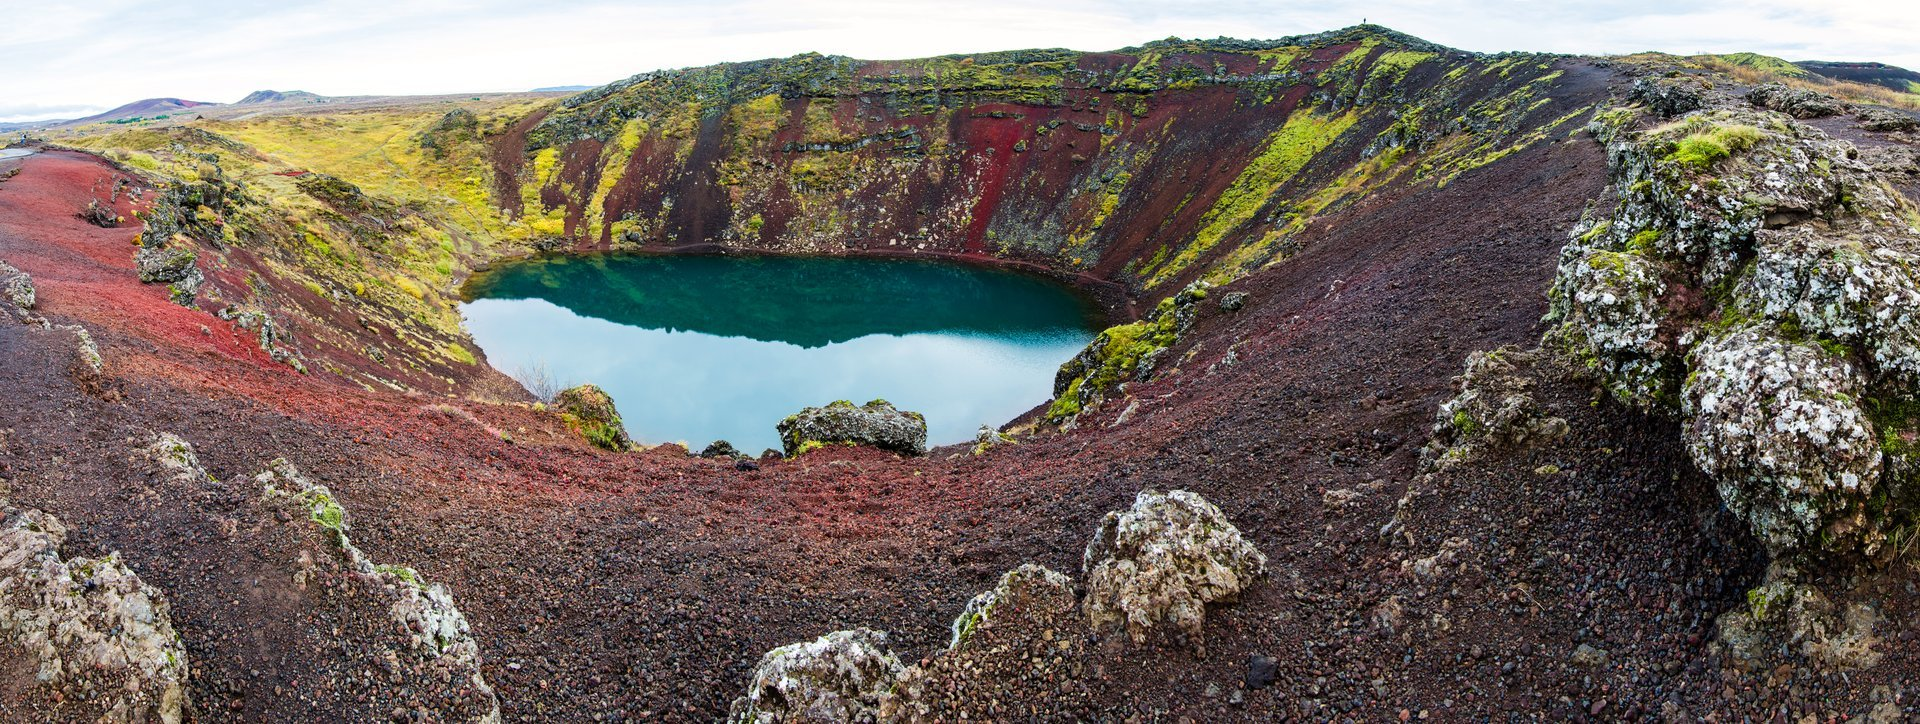 Kerid Crater Lake in Iceland 2020 - Best Time